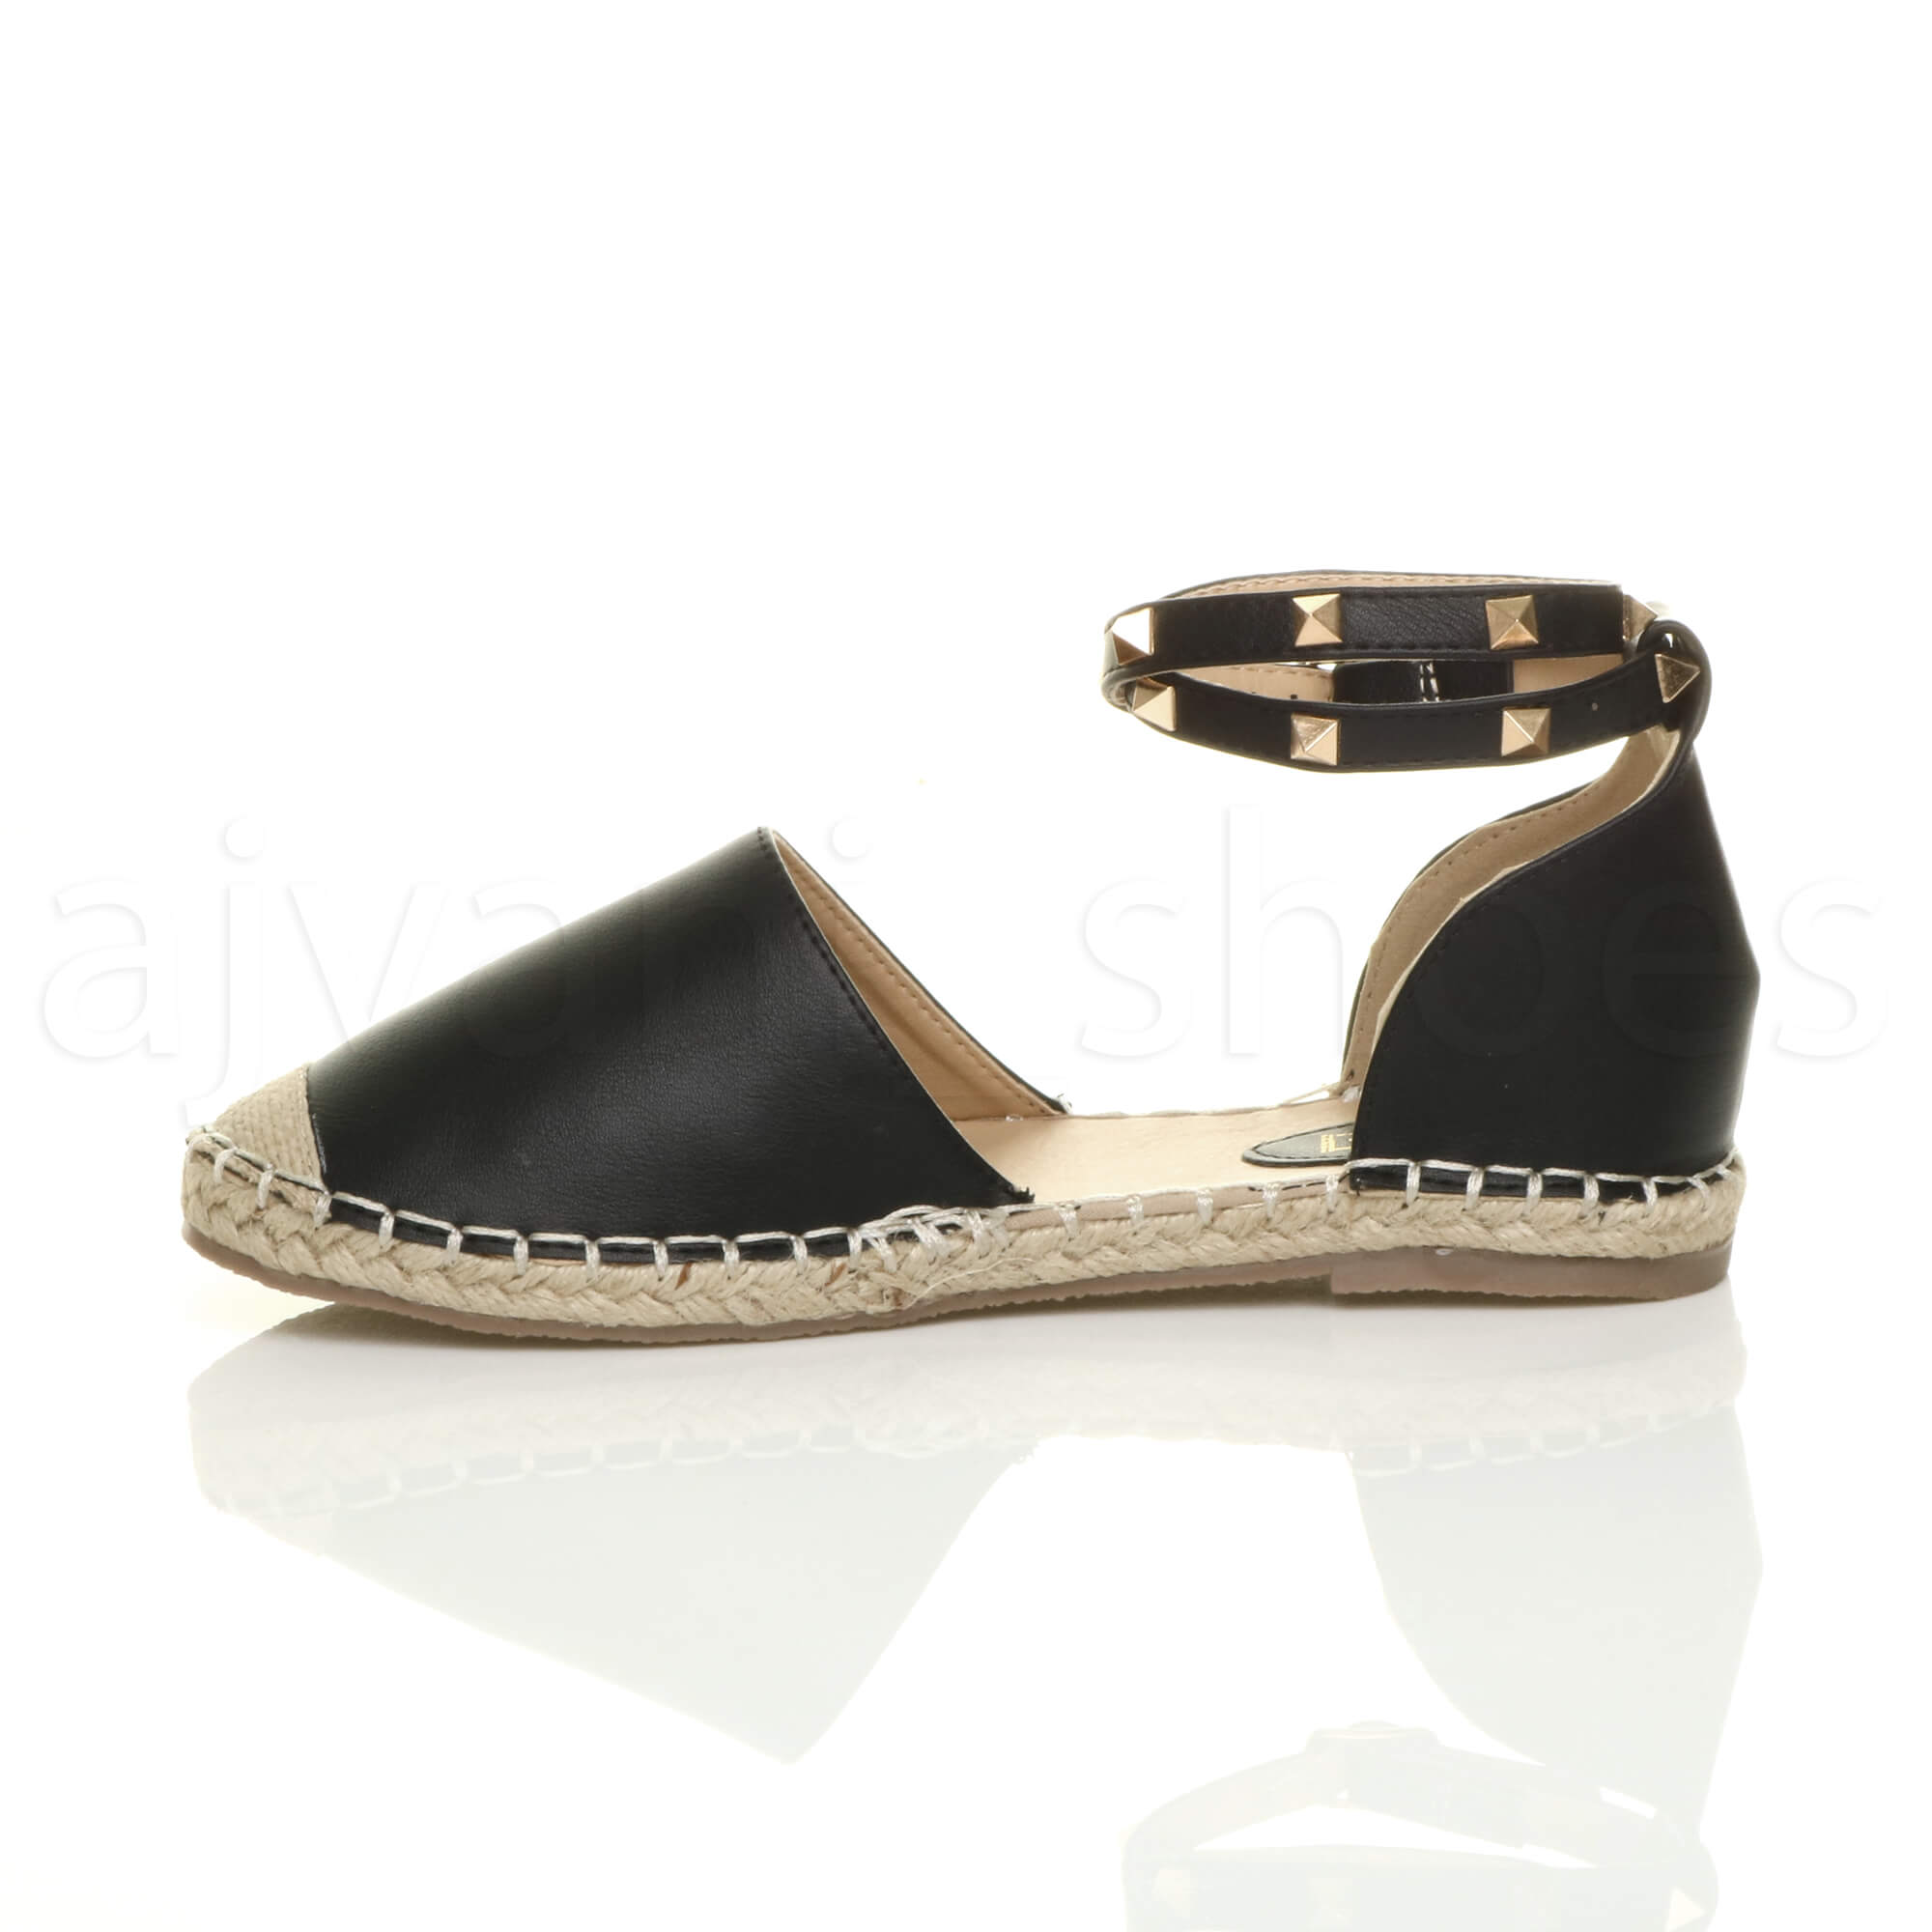 ad7f1444d77ec WOMENS LADIES FLAT STUDDED ANKLE STRAP ESPADRILLES SUMMER SHOES ...